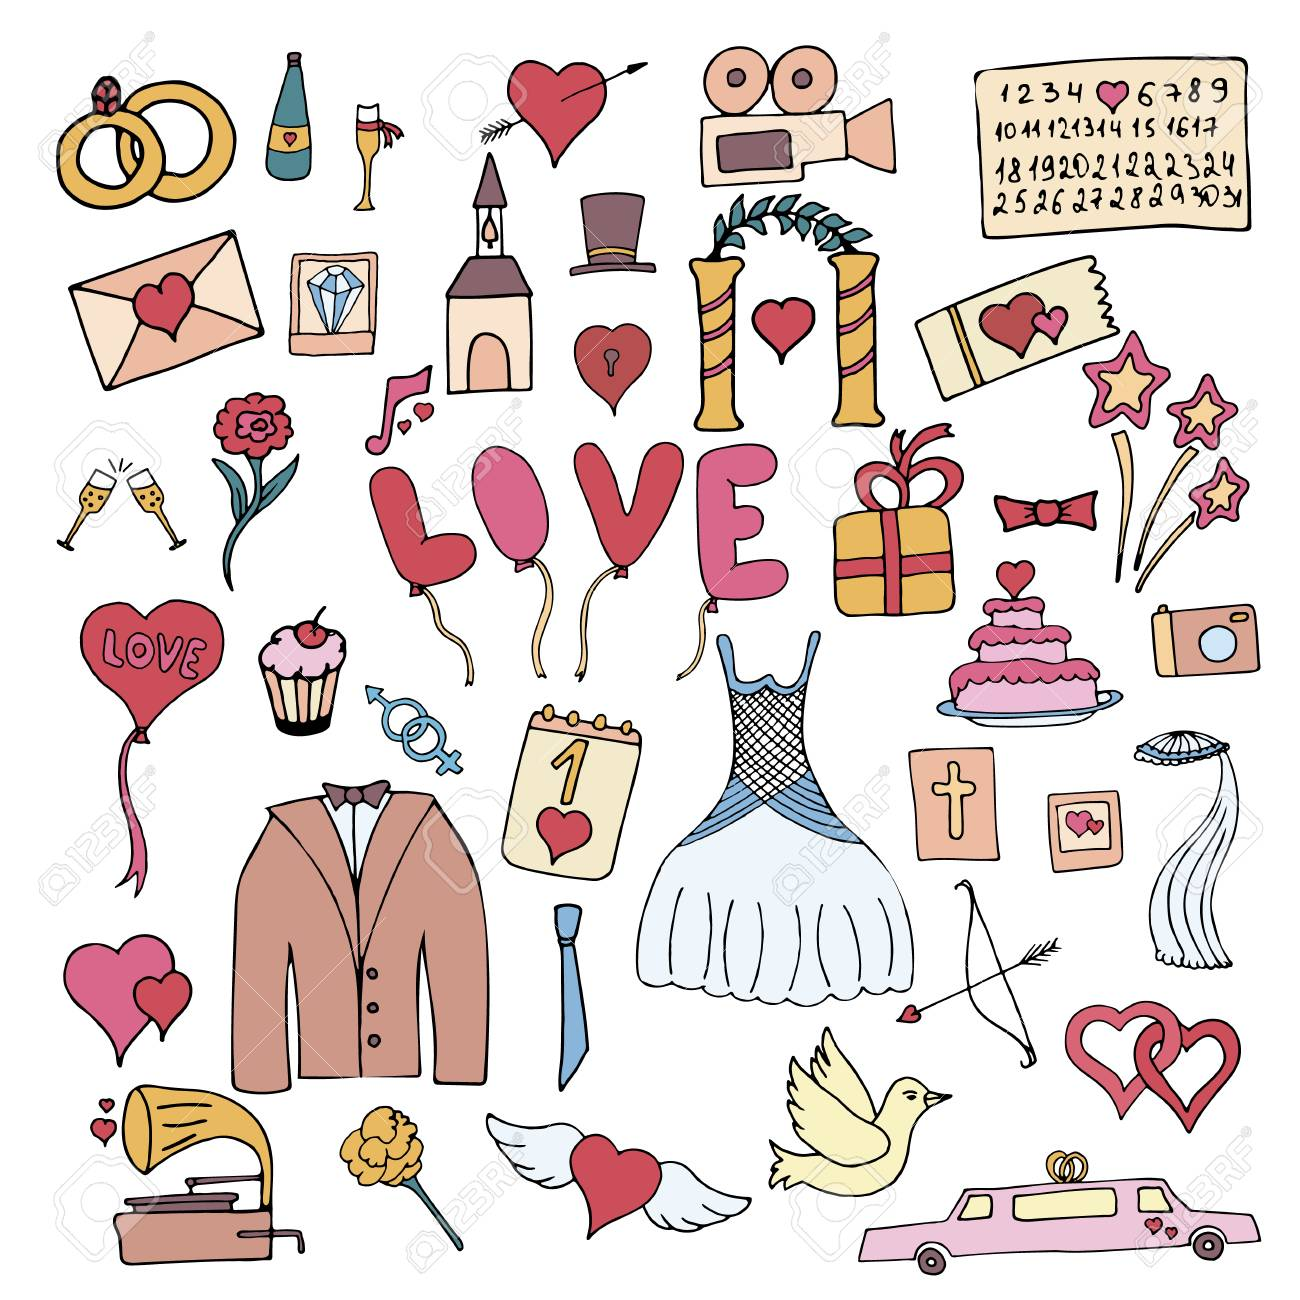 Colorful Hand Drawn Doodle Cartoon Wedding Set Icon Objects